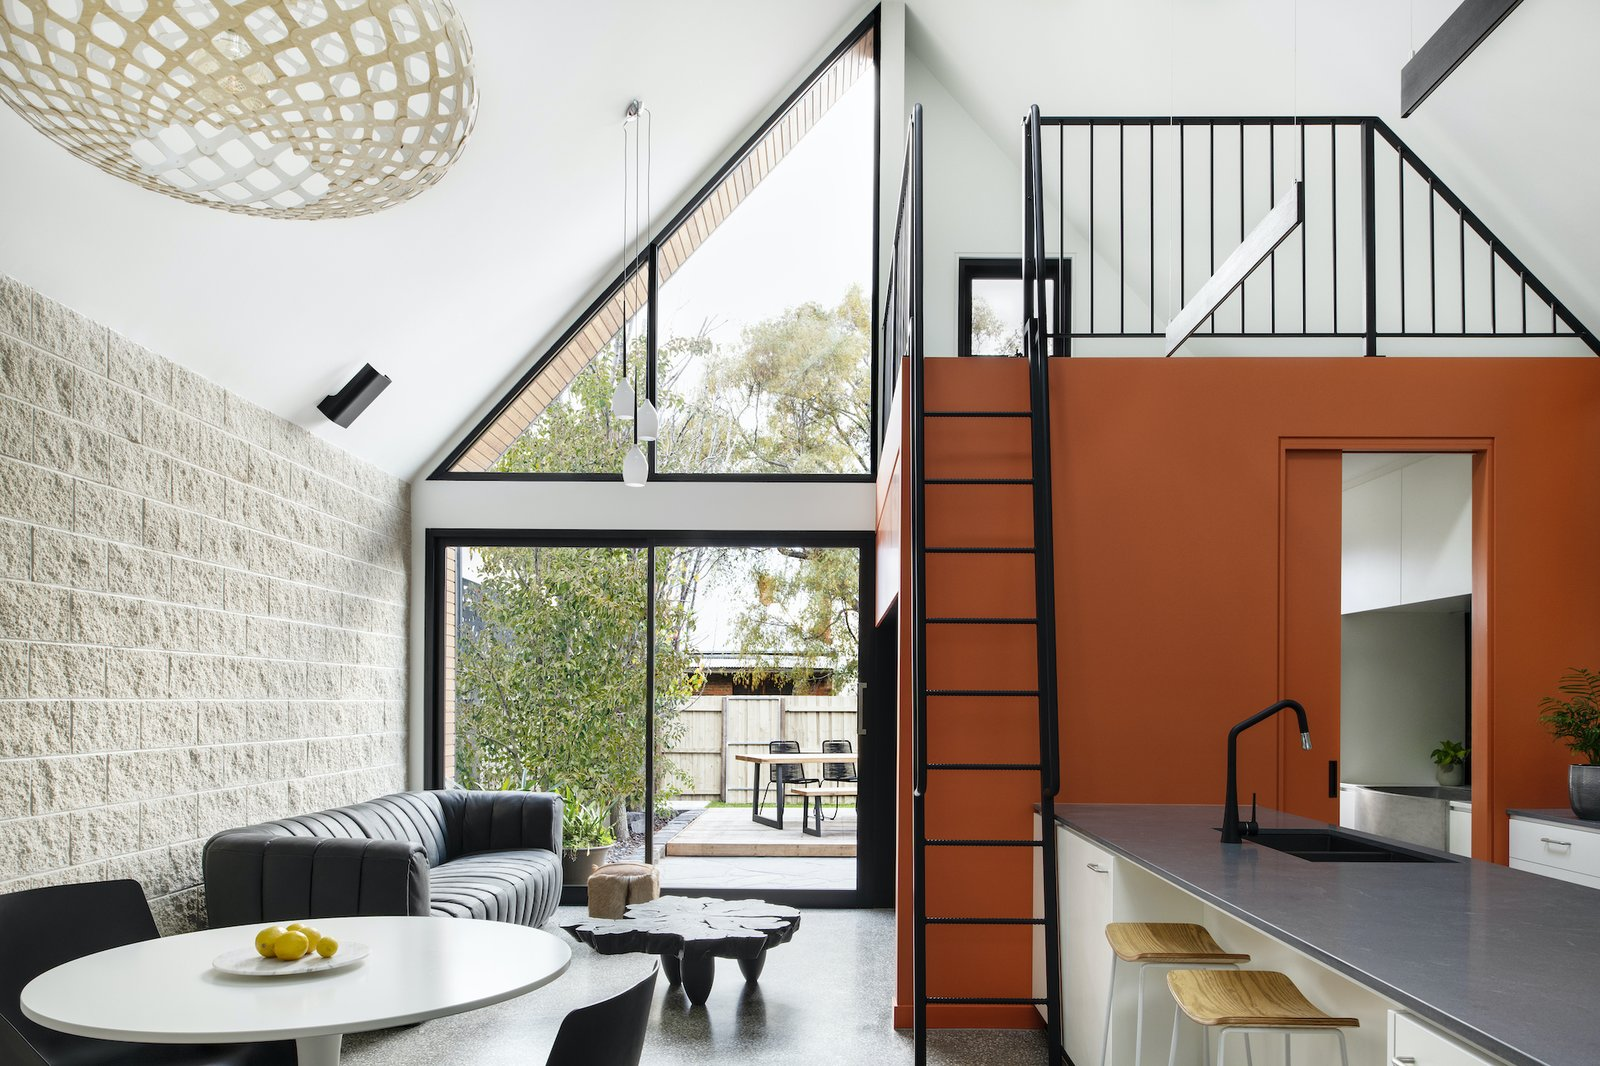 Living area and mezzanine at Cuckoo House by RARA Architecture.